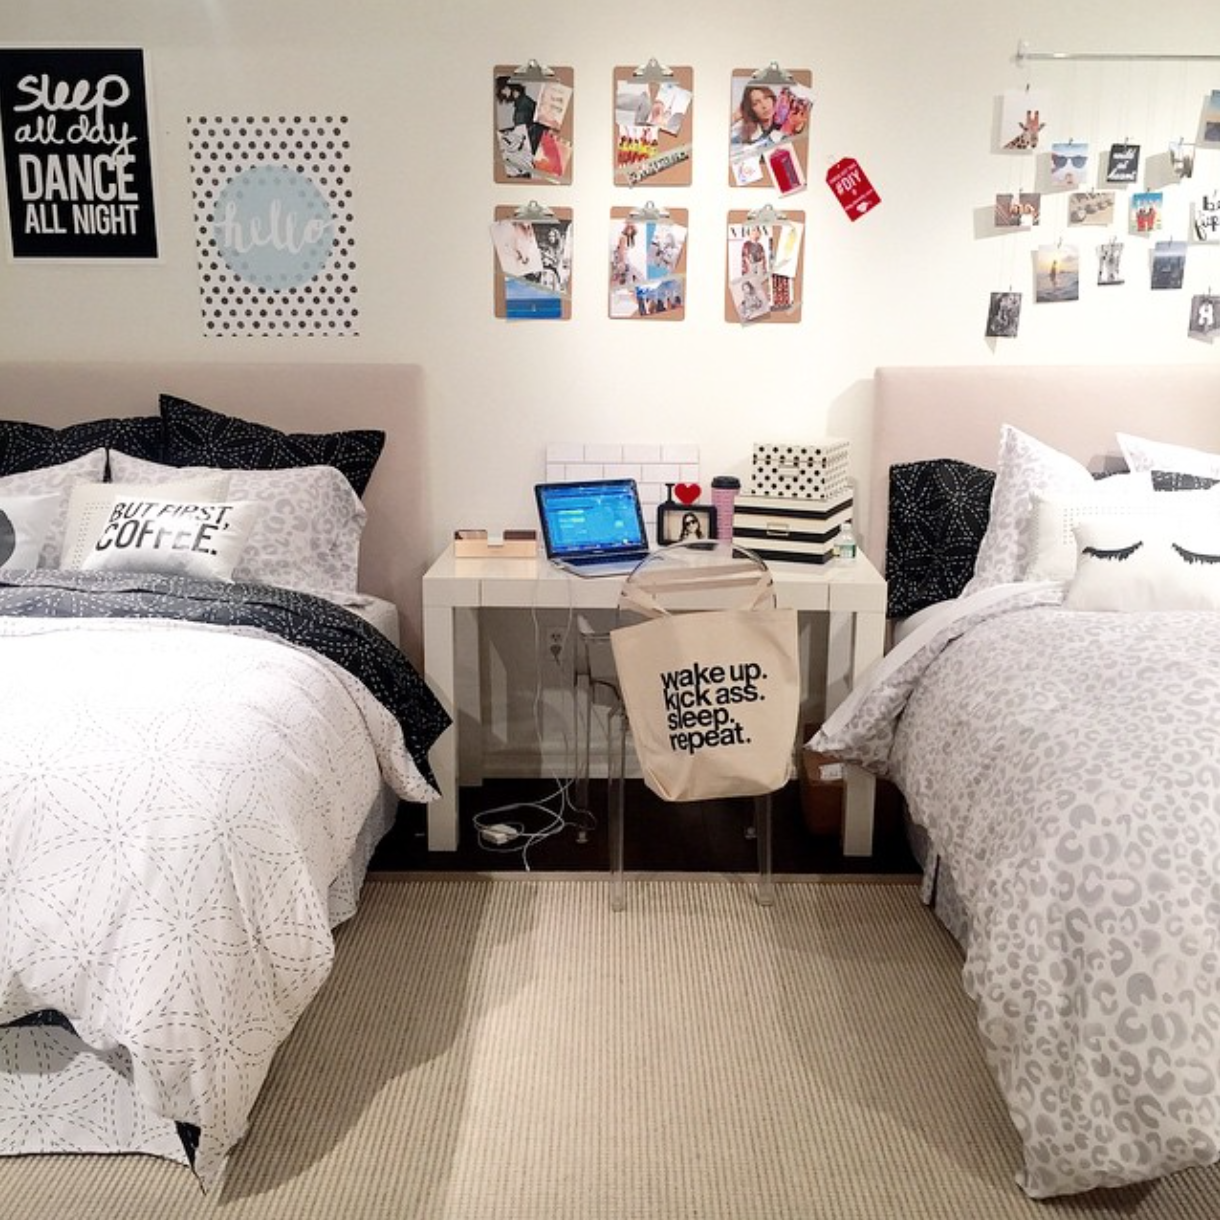 Best Dormify Has Some Awesome Decorations For Next Year Dorm 400 x 300